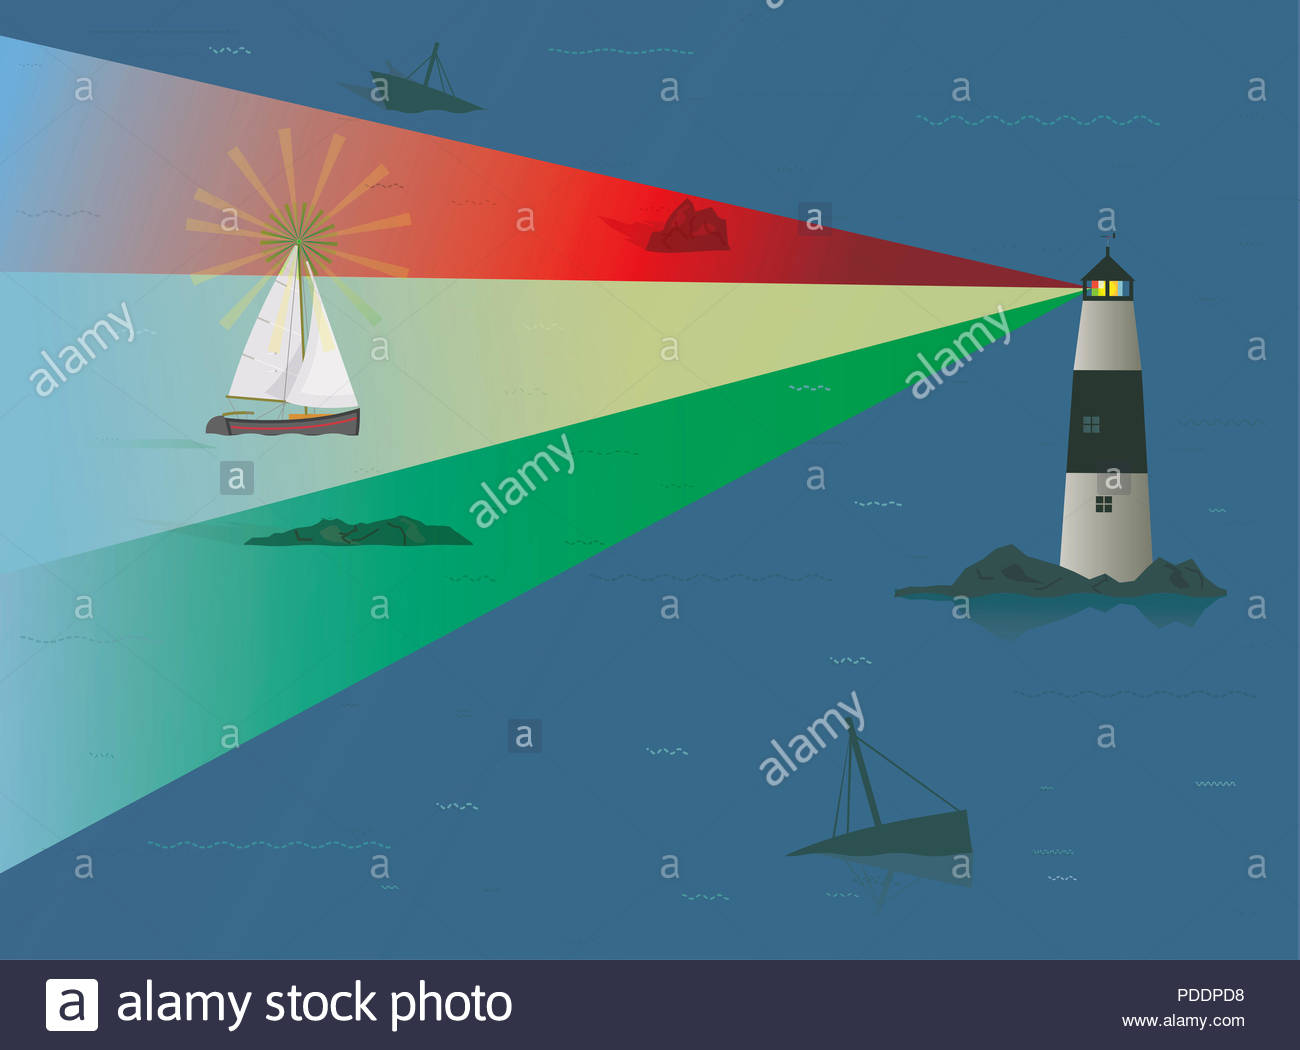 Sail Boat Pilotage, Sailboat being guided by Beacon of Light from Lighthouse, Risk Concept, Skill, Experience, Navigation, Guiding Lights, Timing, Sea - Stock Image